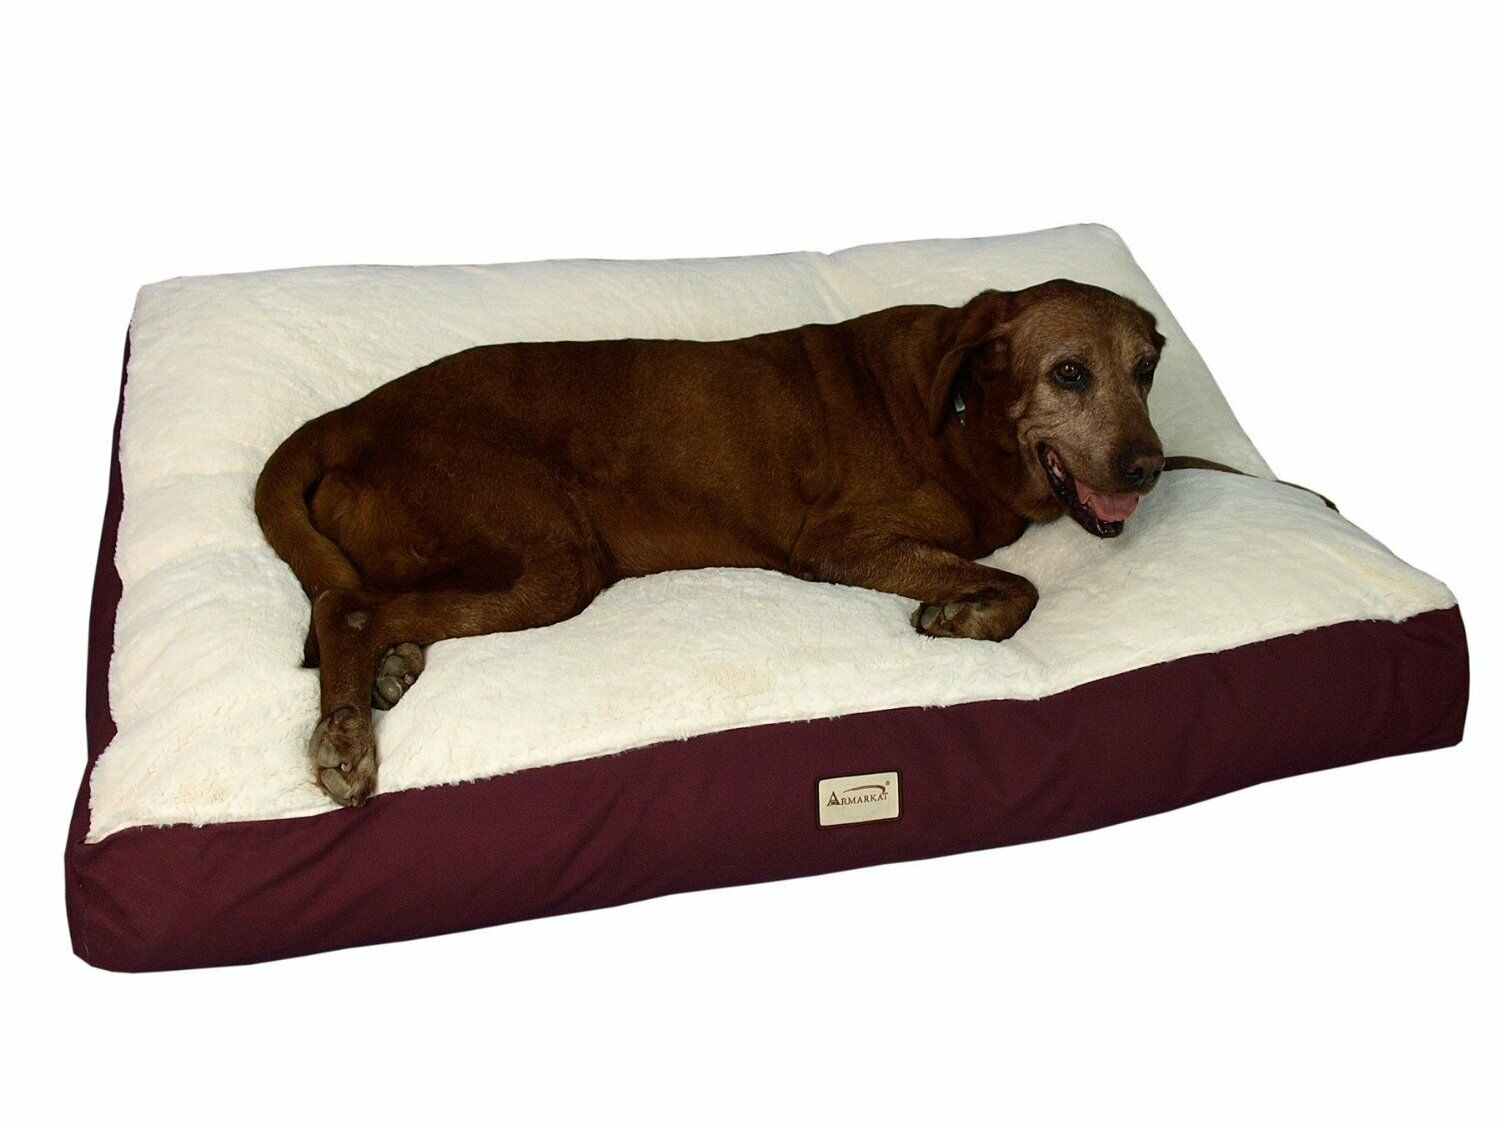 Armarkat Pet Bed with Waterproof Lining, Removal color, Non Skid Base NEW